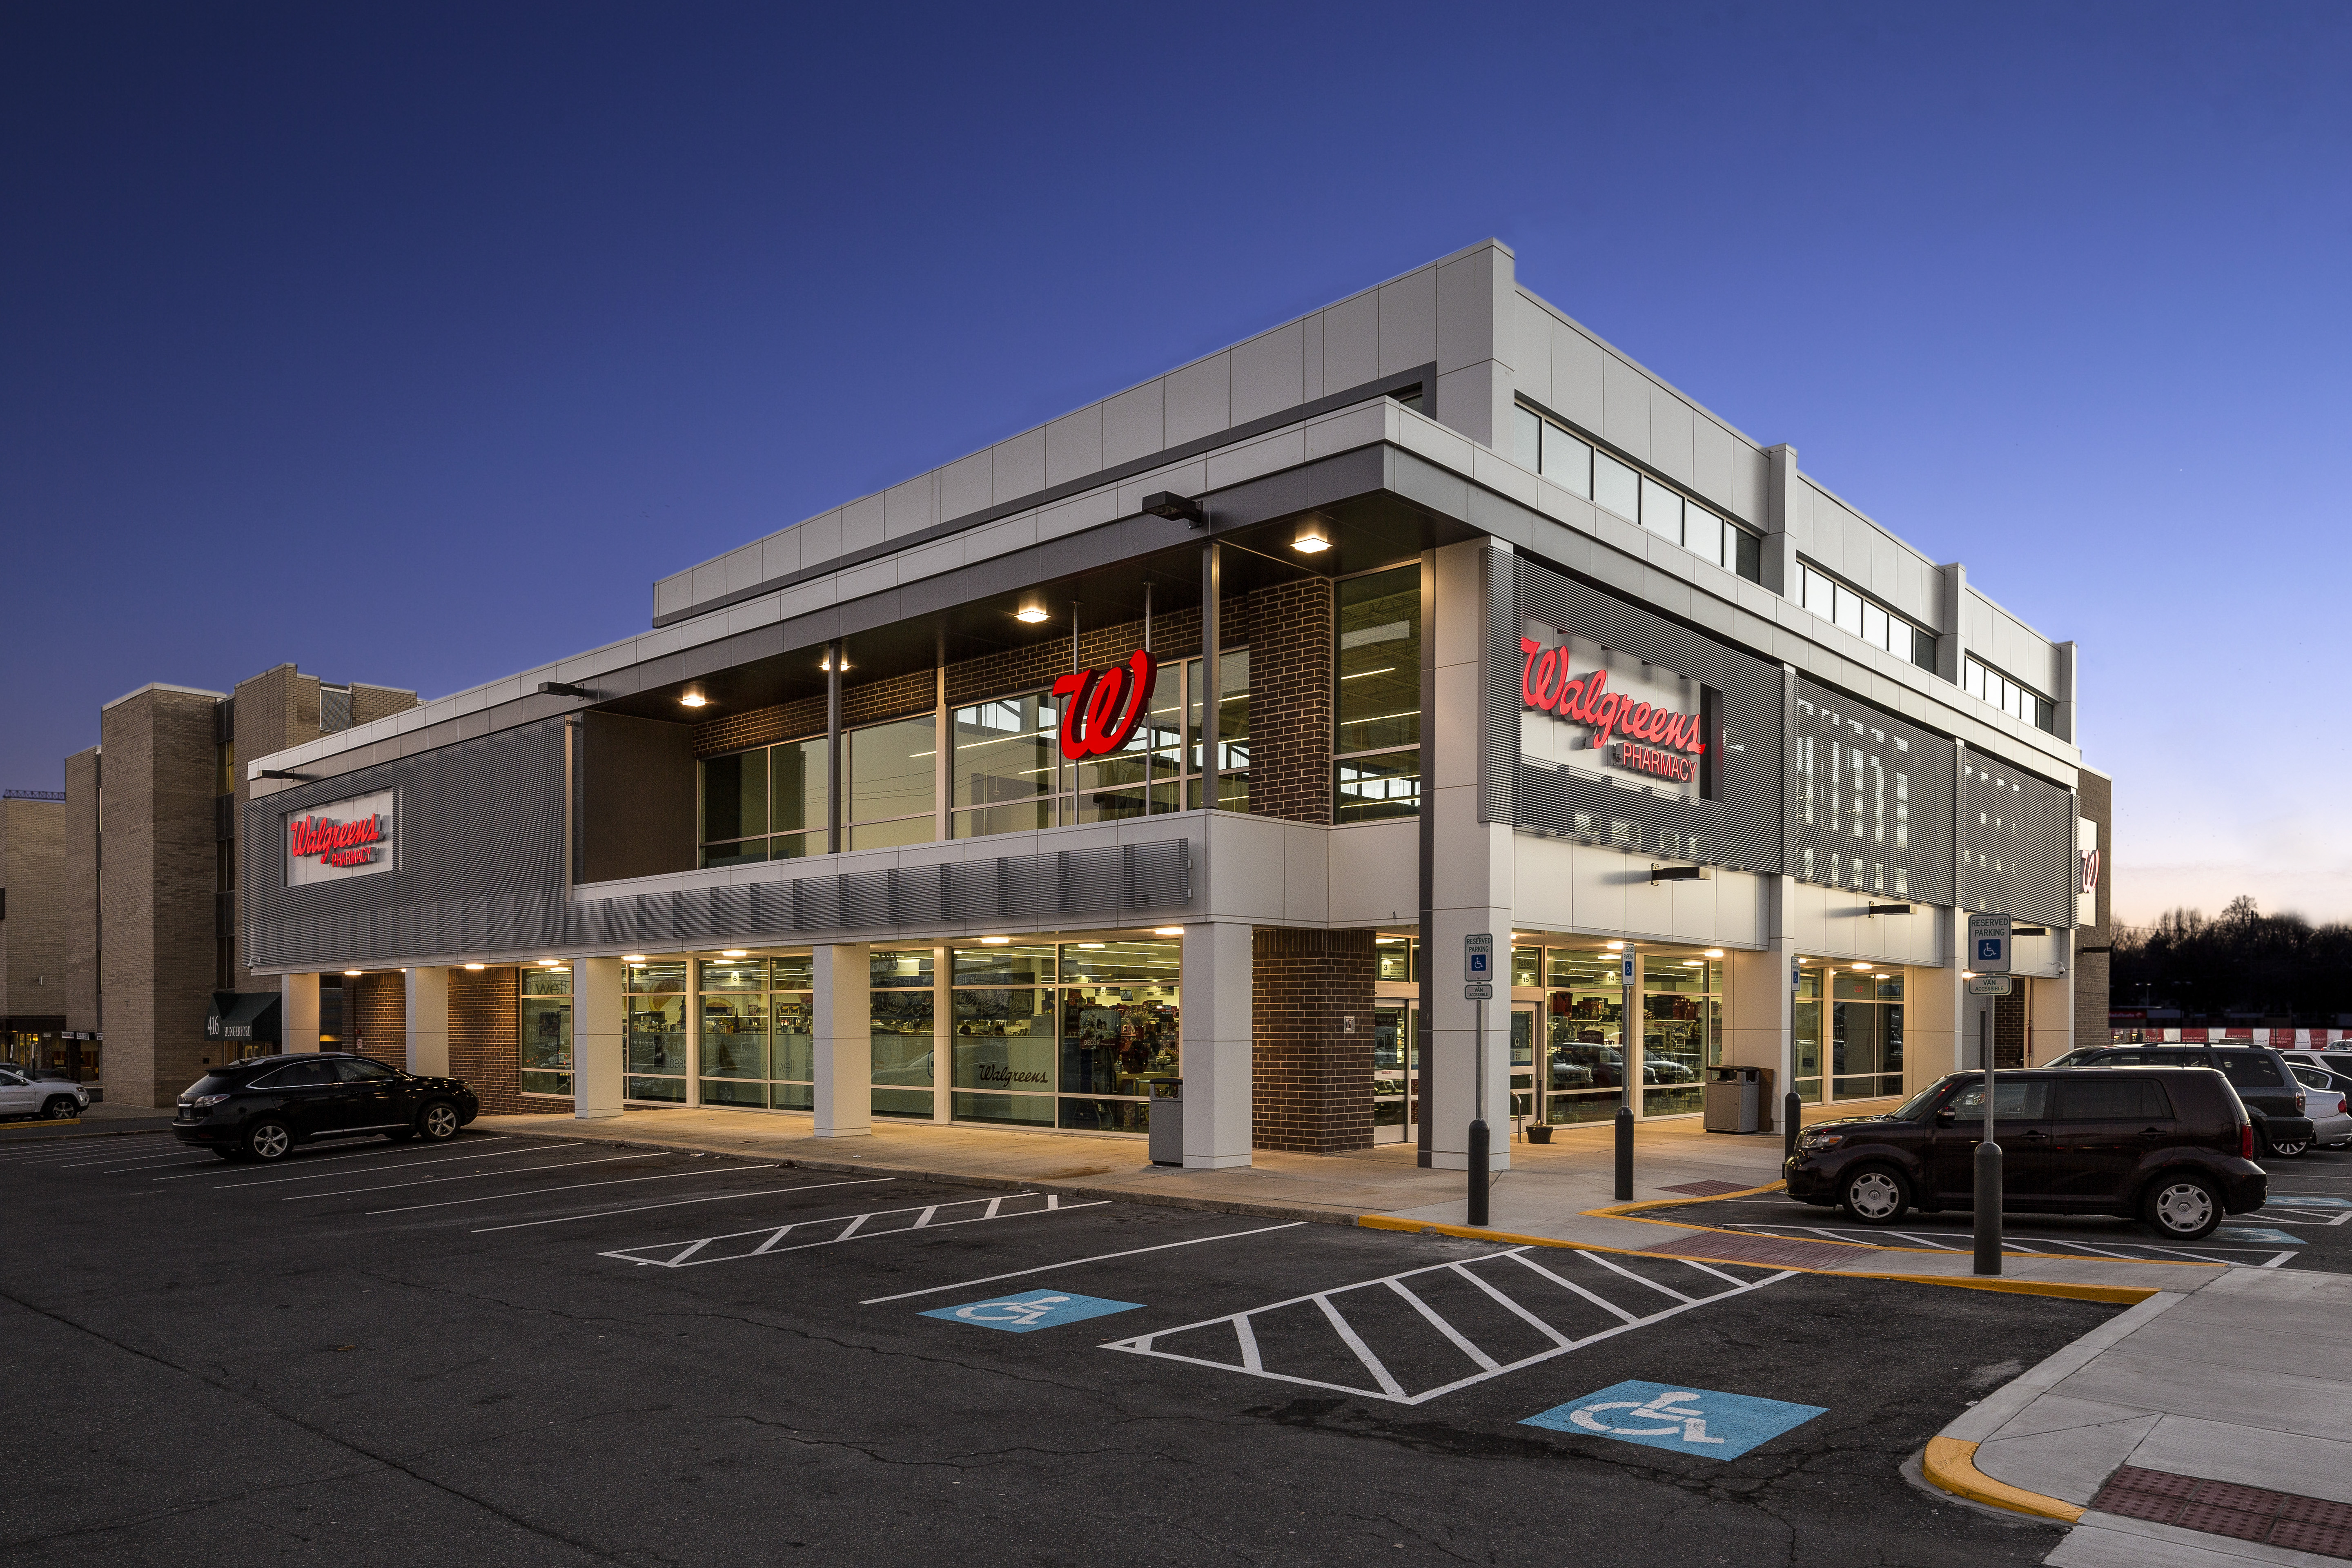 Walgreens Architect Magazine Gtm Architects Rockville Md United States Commercial